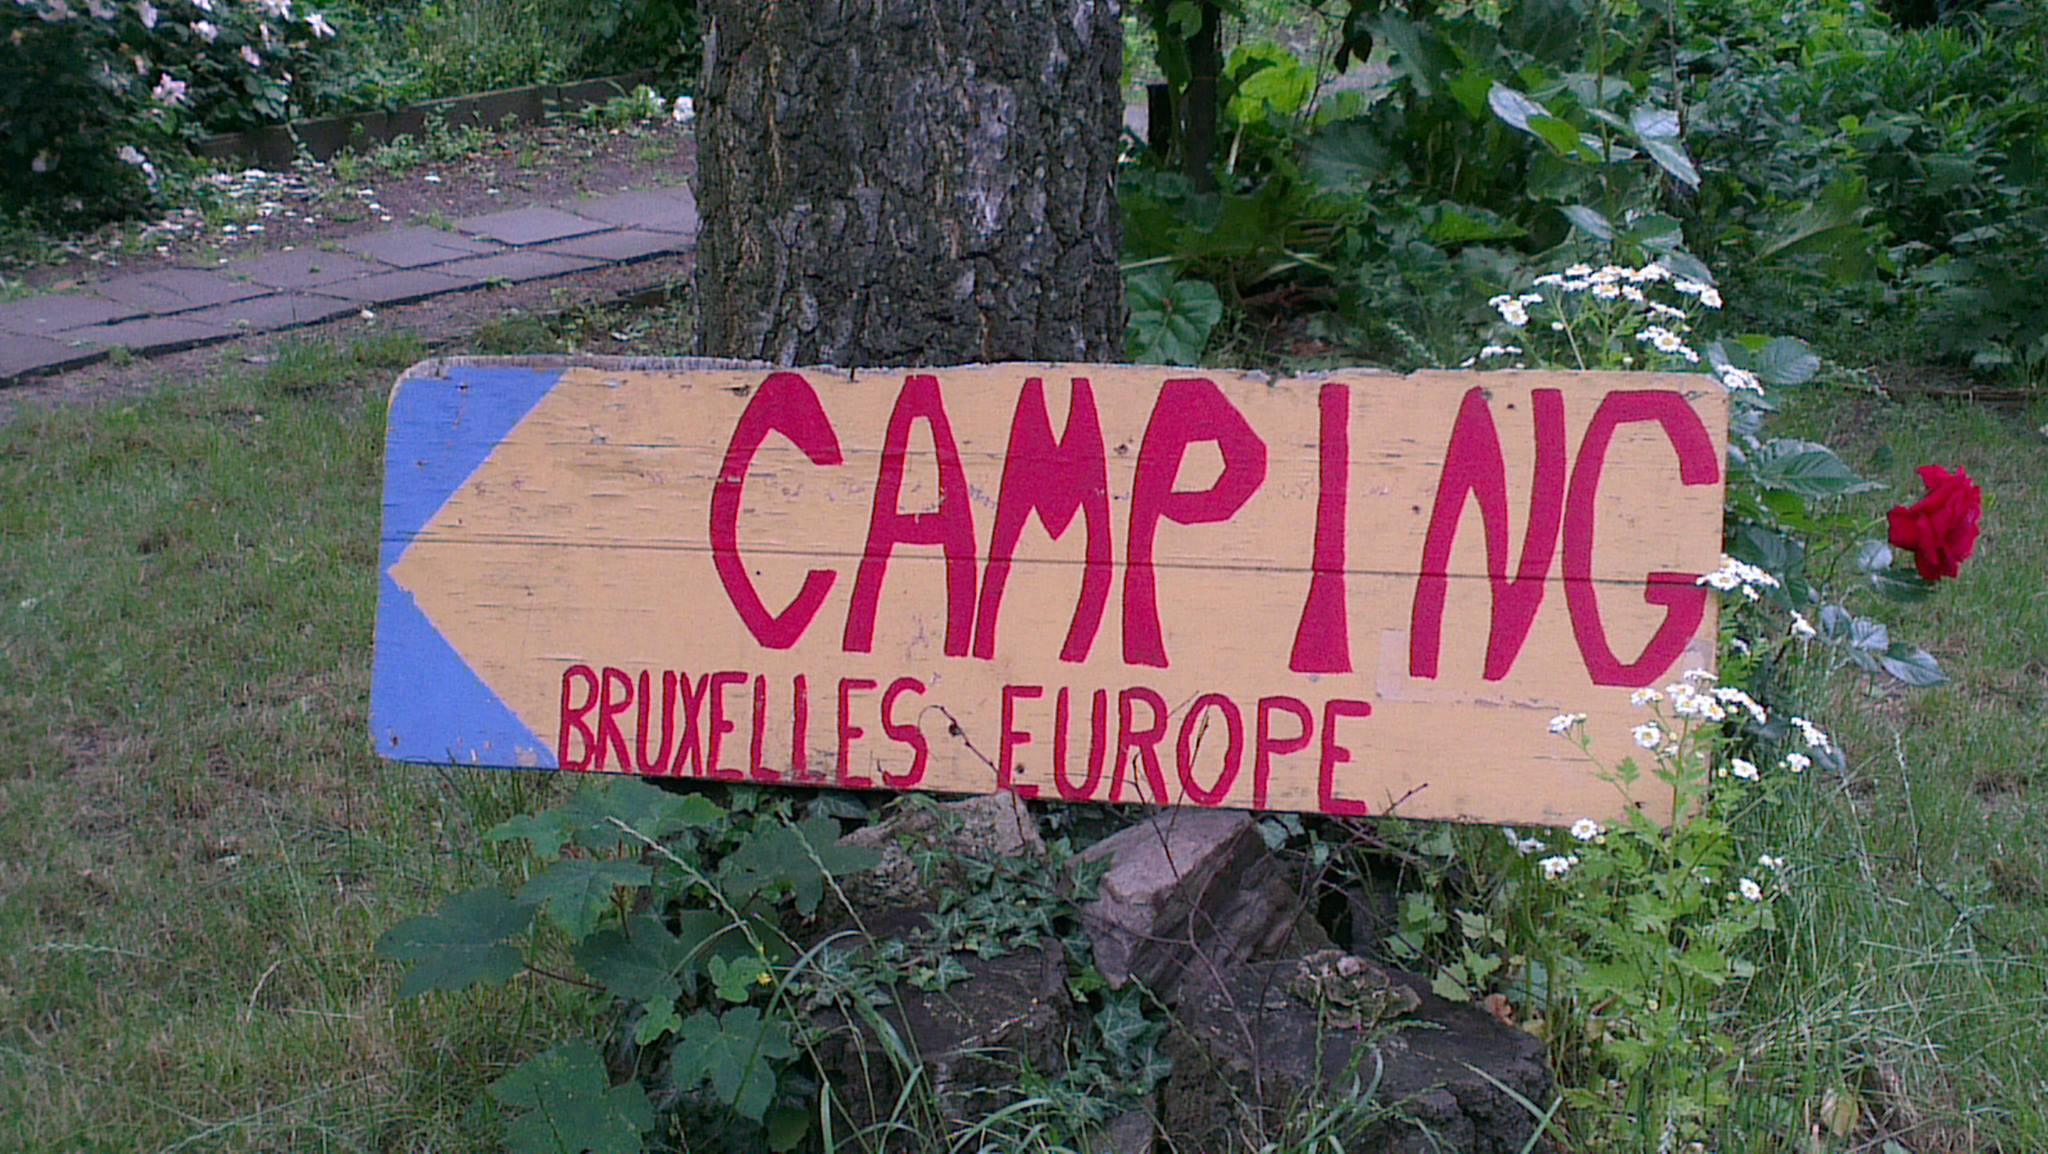 Faire du camping à Bruxelles, c'est possible !